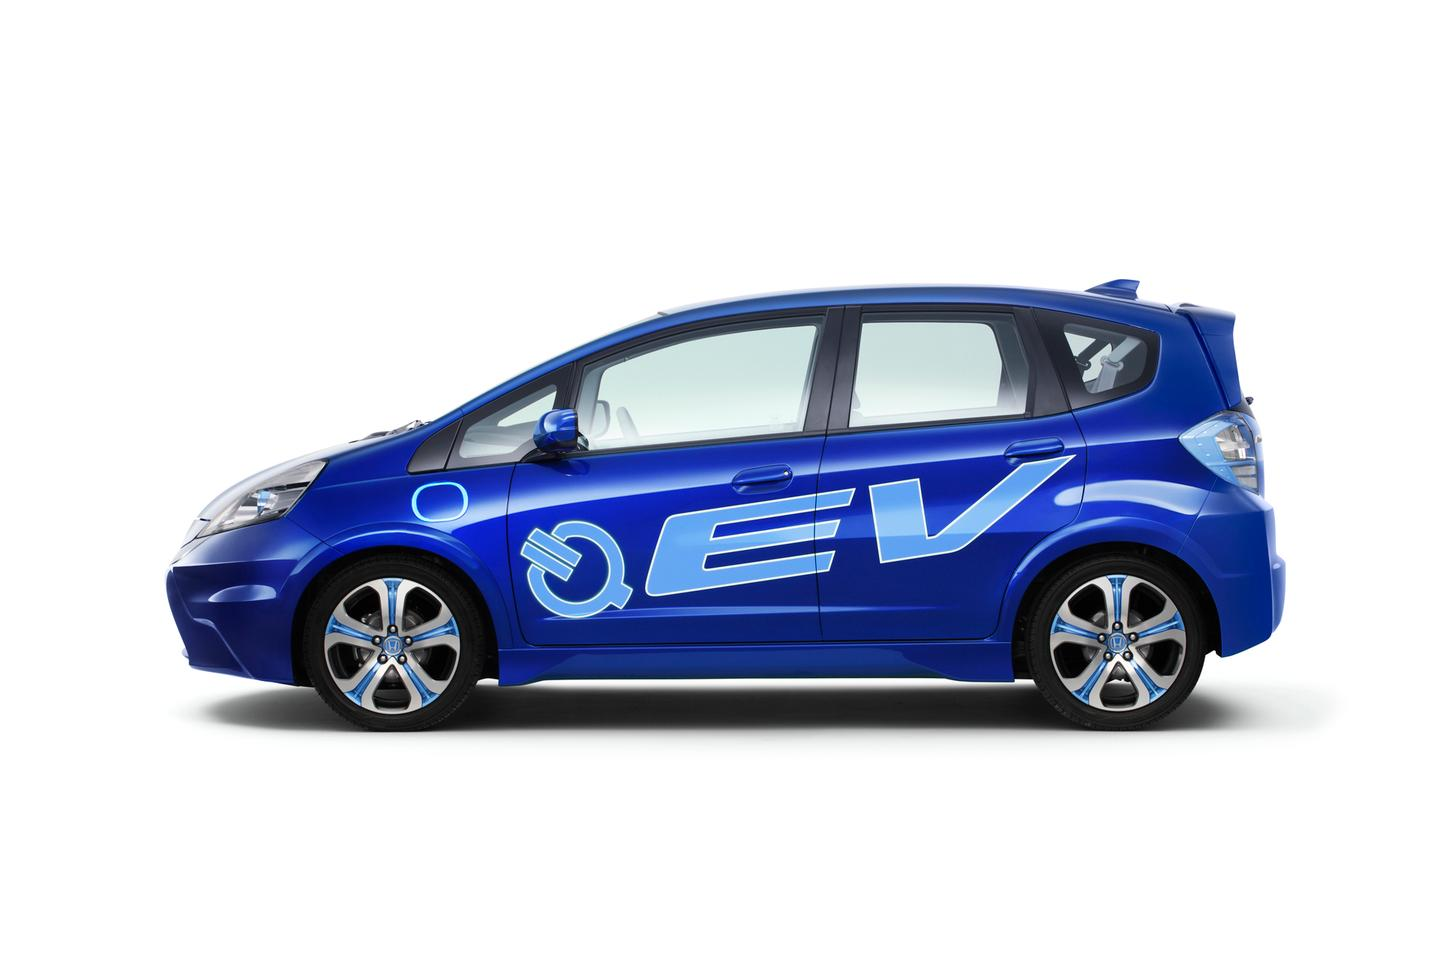 The Fit EV will be able to seamlessly switch between different driving modes,enabling the driver to optimise efficiency in Econ mode or improve acceleration in Sport mode